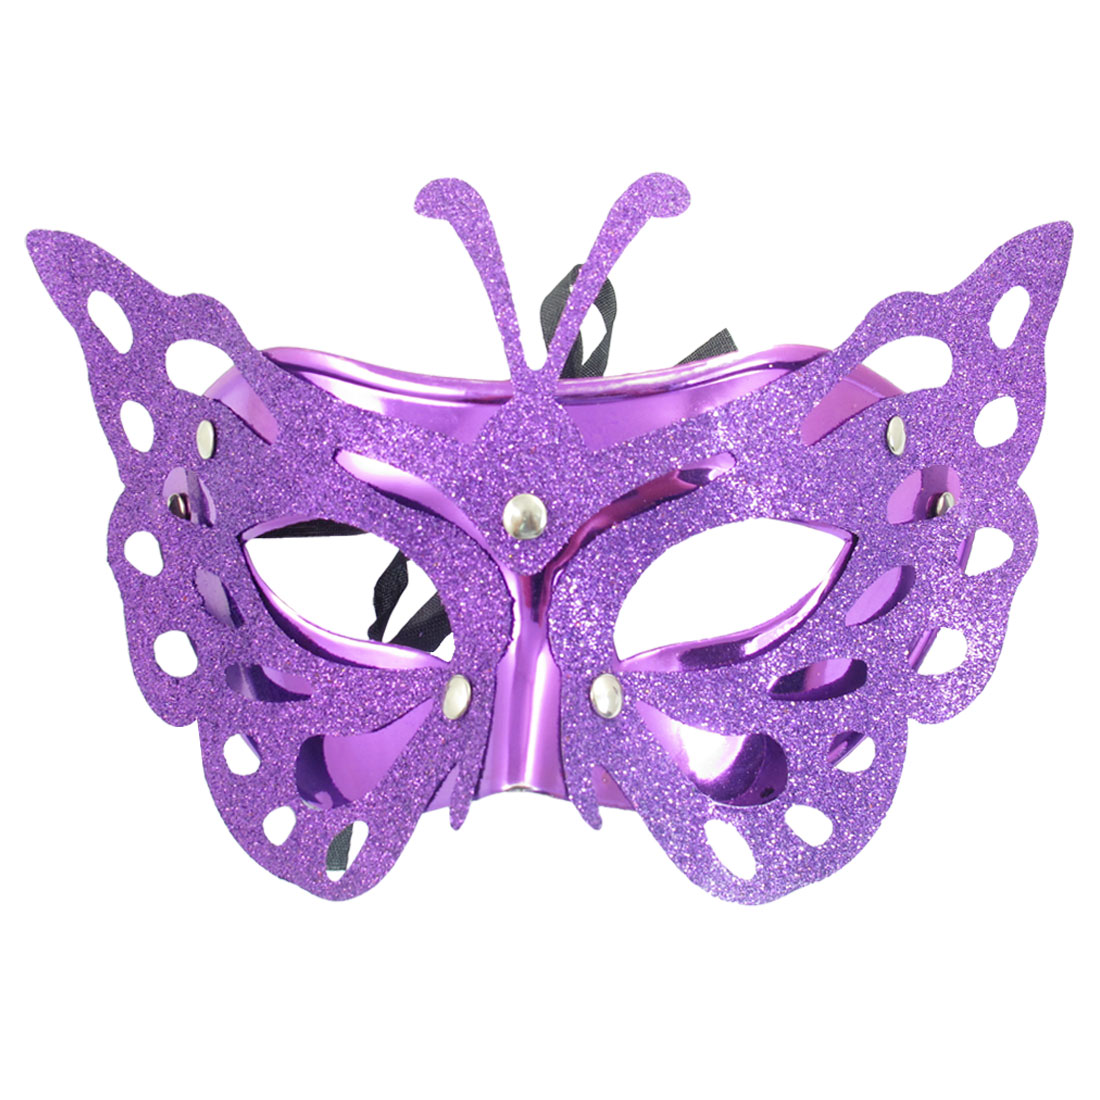 Ladies Halloween Party Plastic Glitter Powder Covered Eye Mask Purple